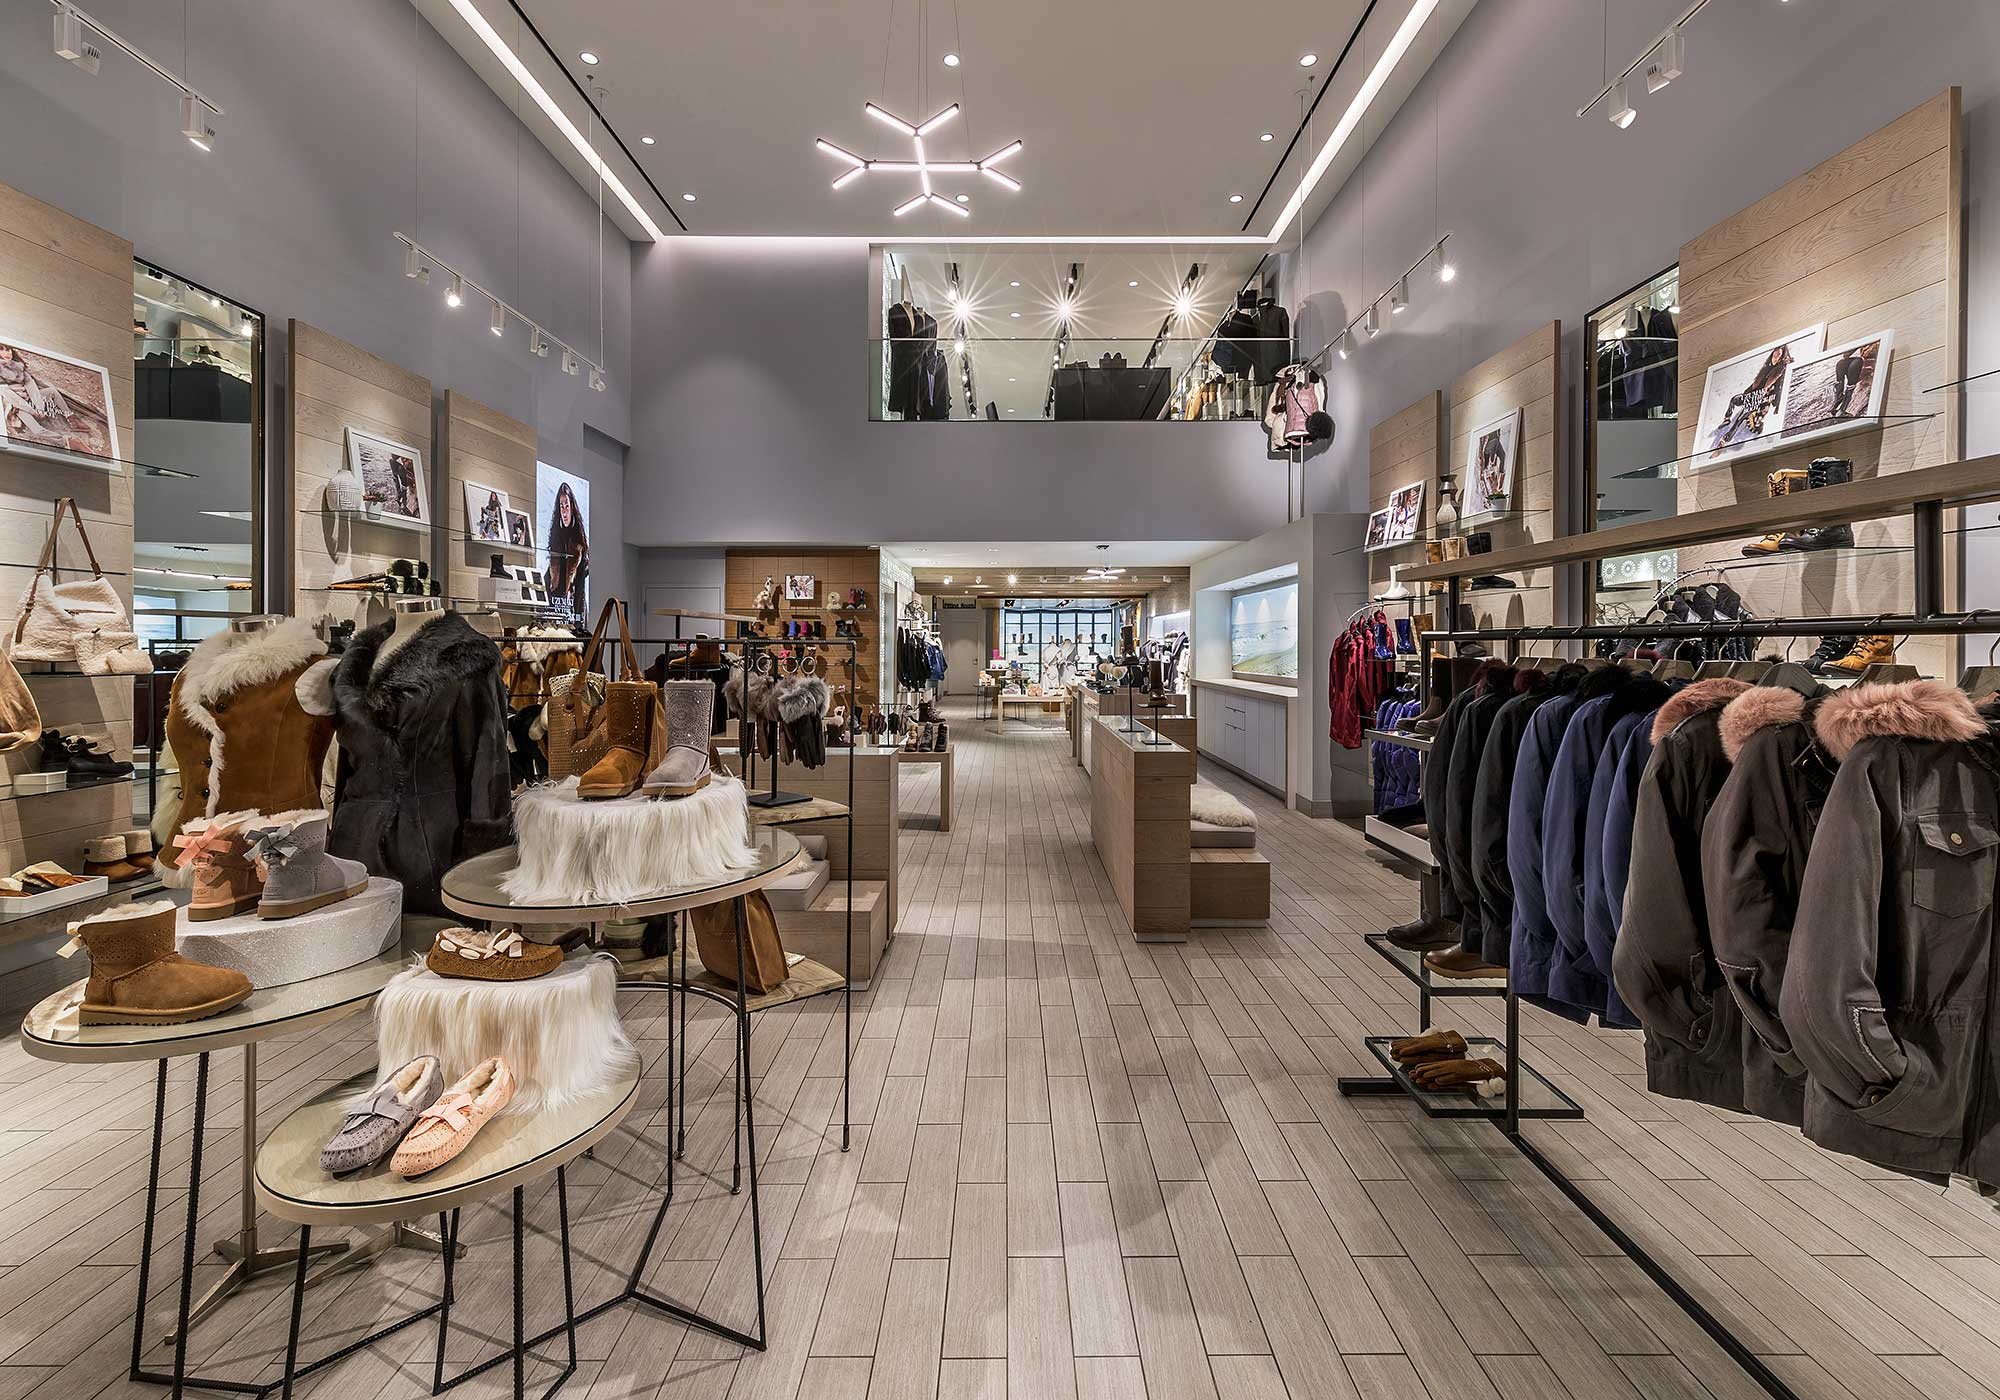 Displays in the flagship store